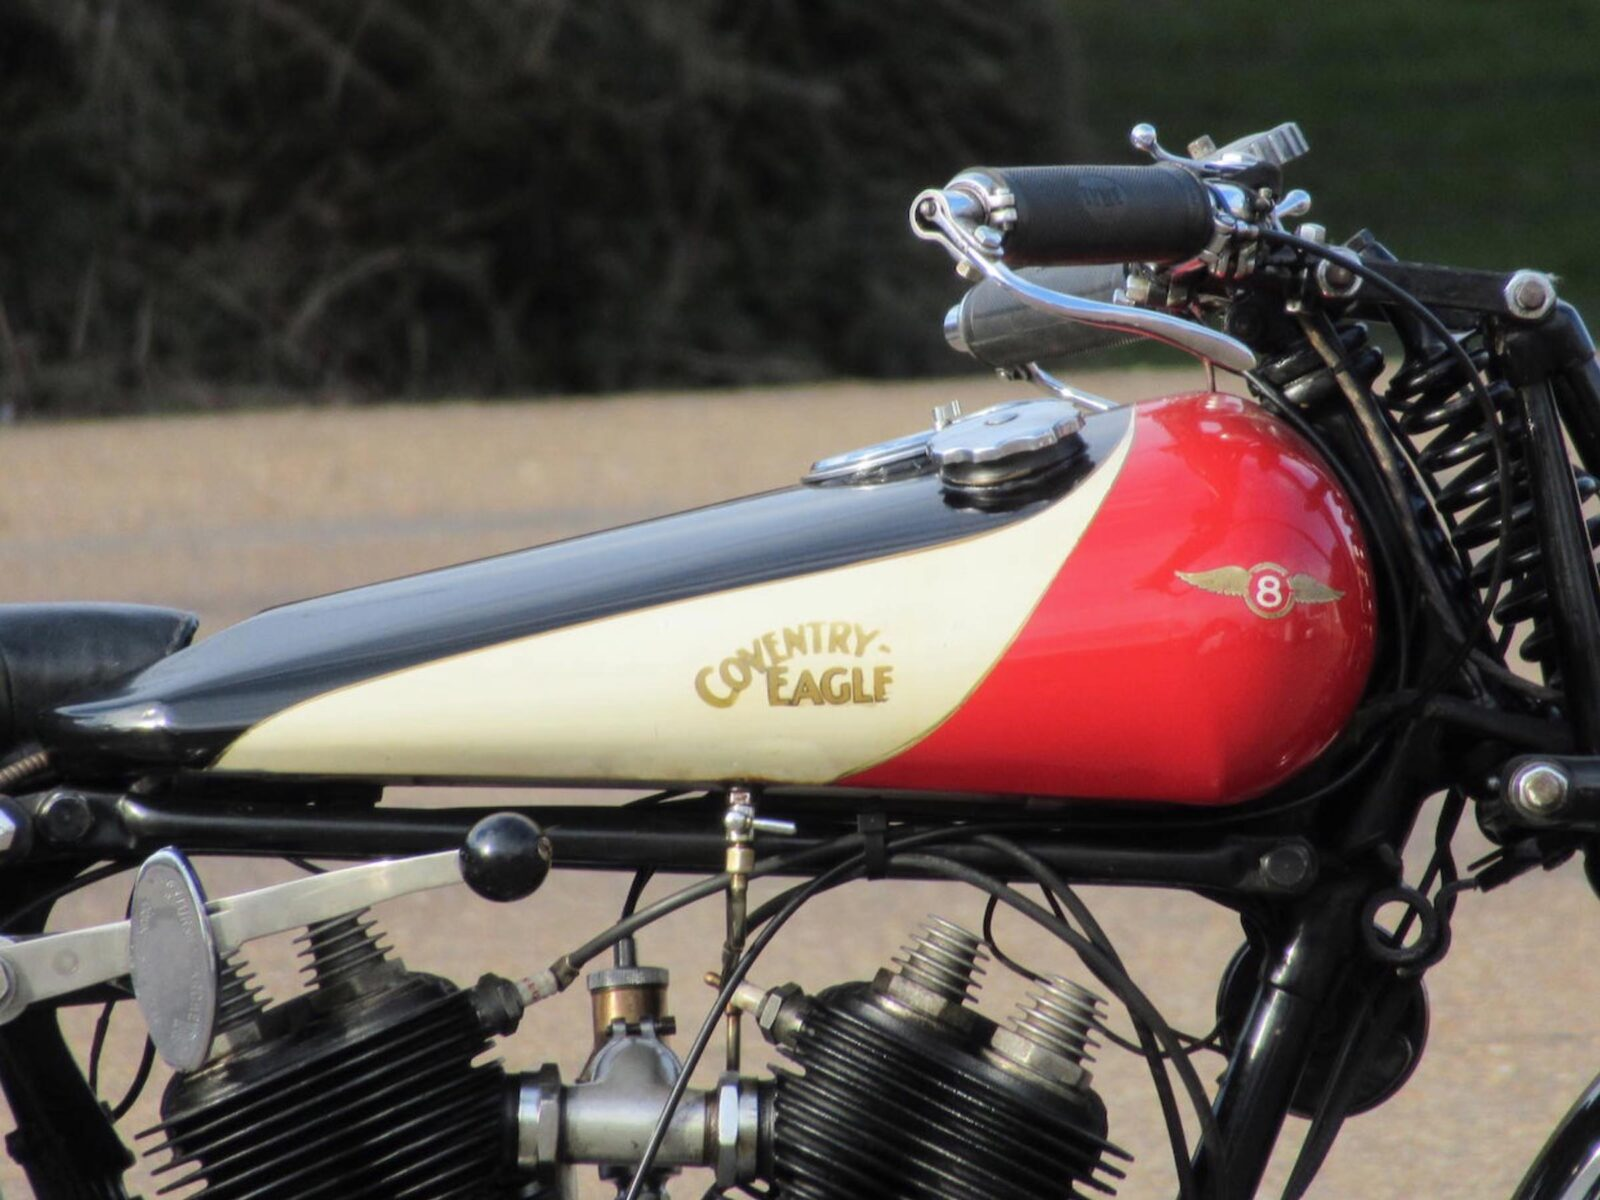 Coventry Eagle Flying 8 Motorcycle Fuel Tank 1600x1200 - An Early High-Speed Police Pursuit Motorcycle - The Coventry-Eagle Flying-8